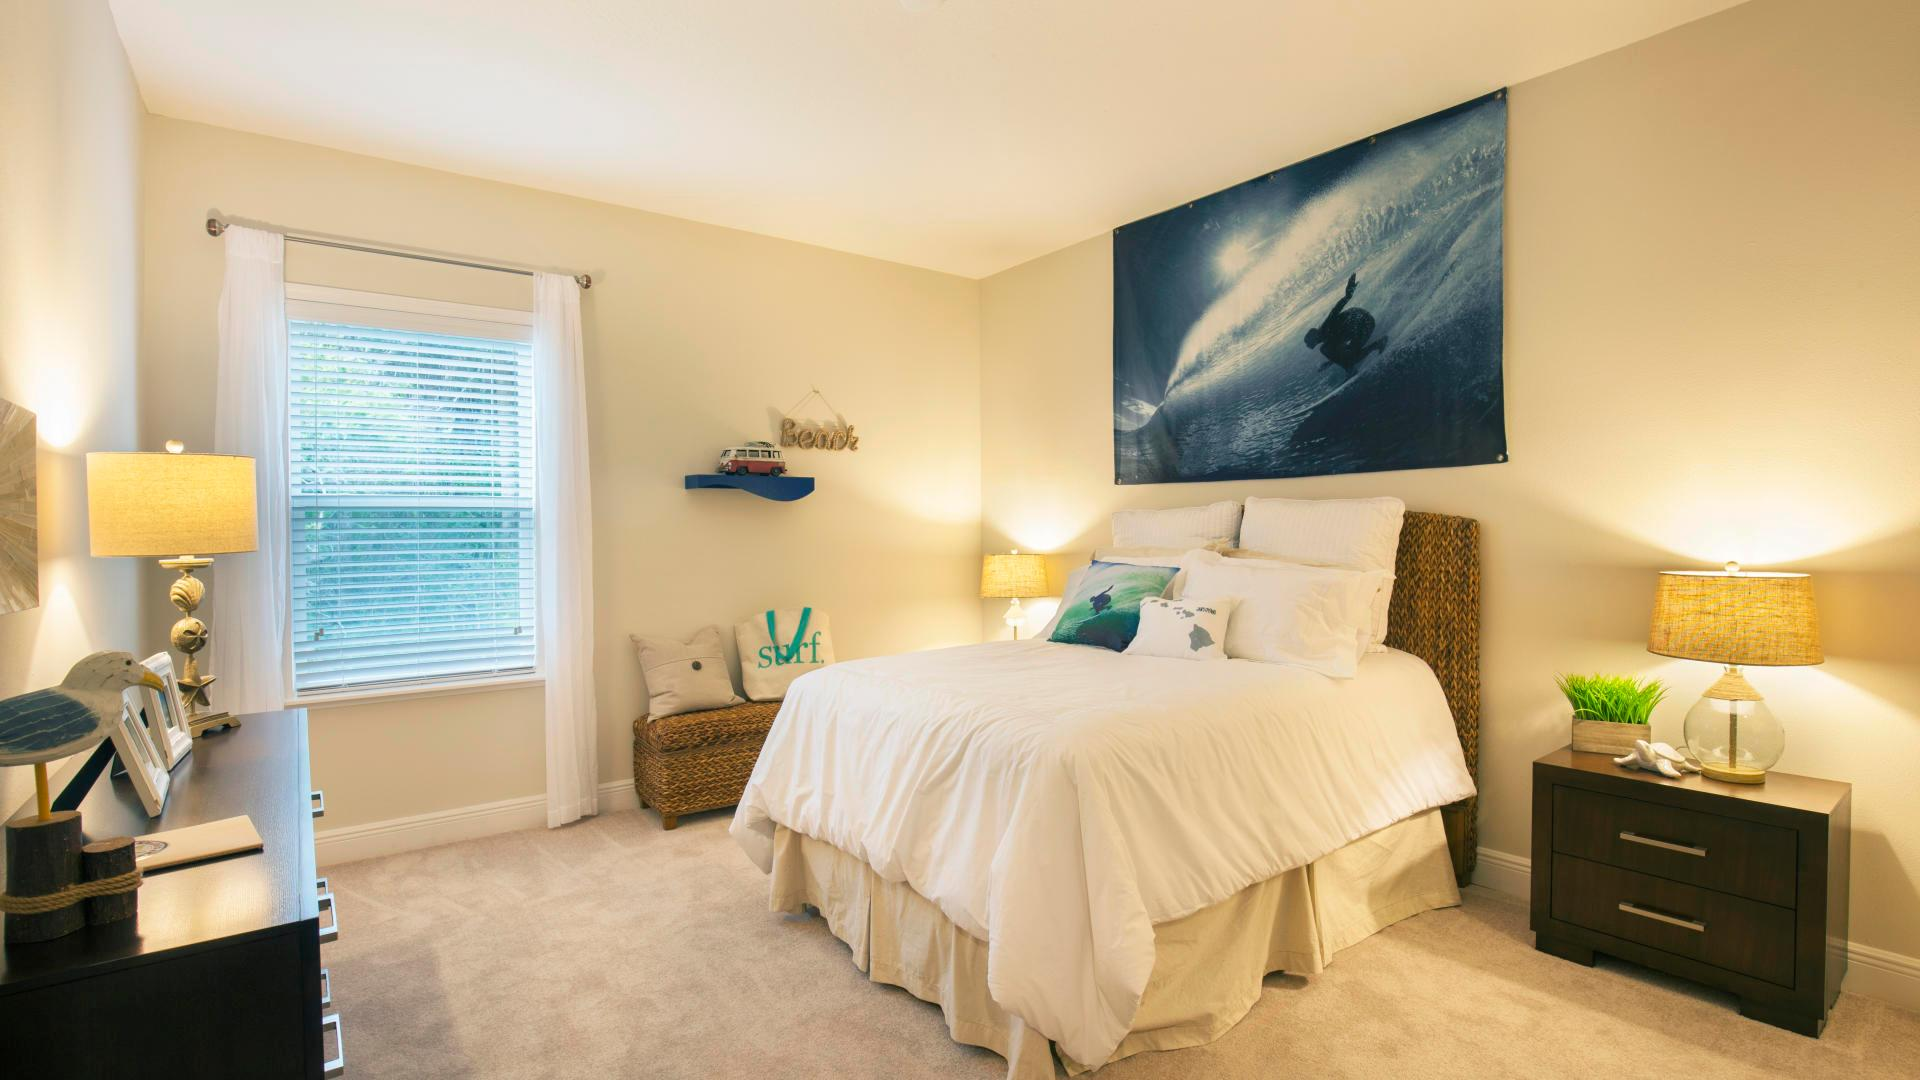 Bedroom featured in the Livorno By Maronda Homes in Gainesville, FL